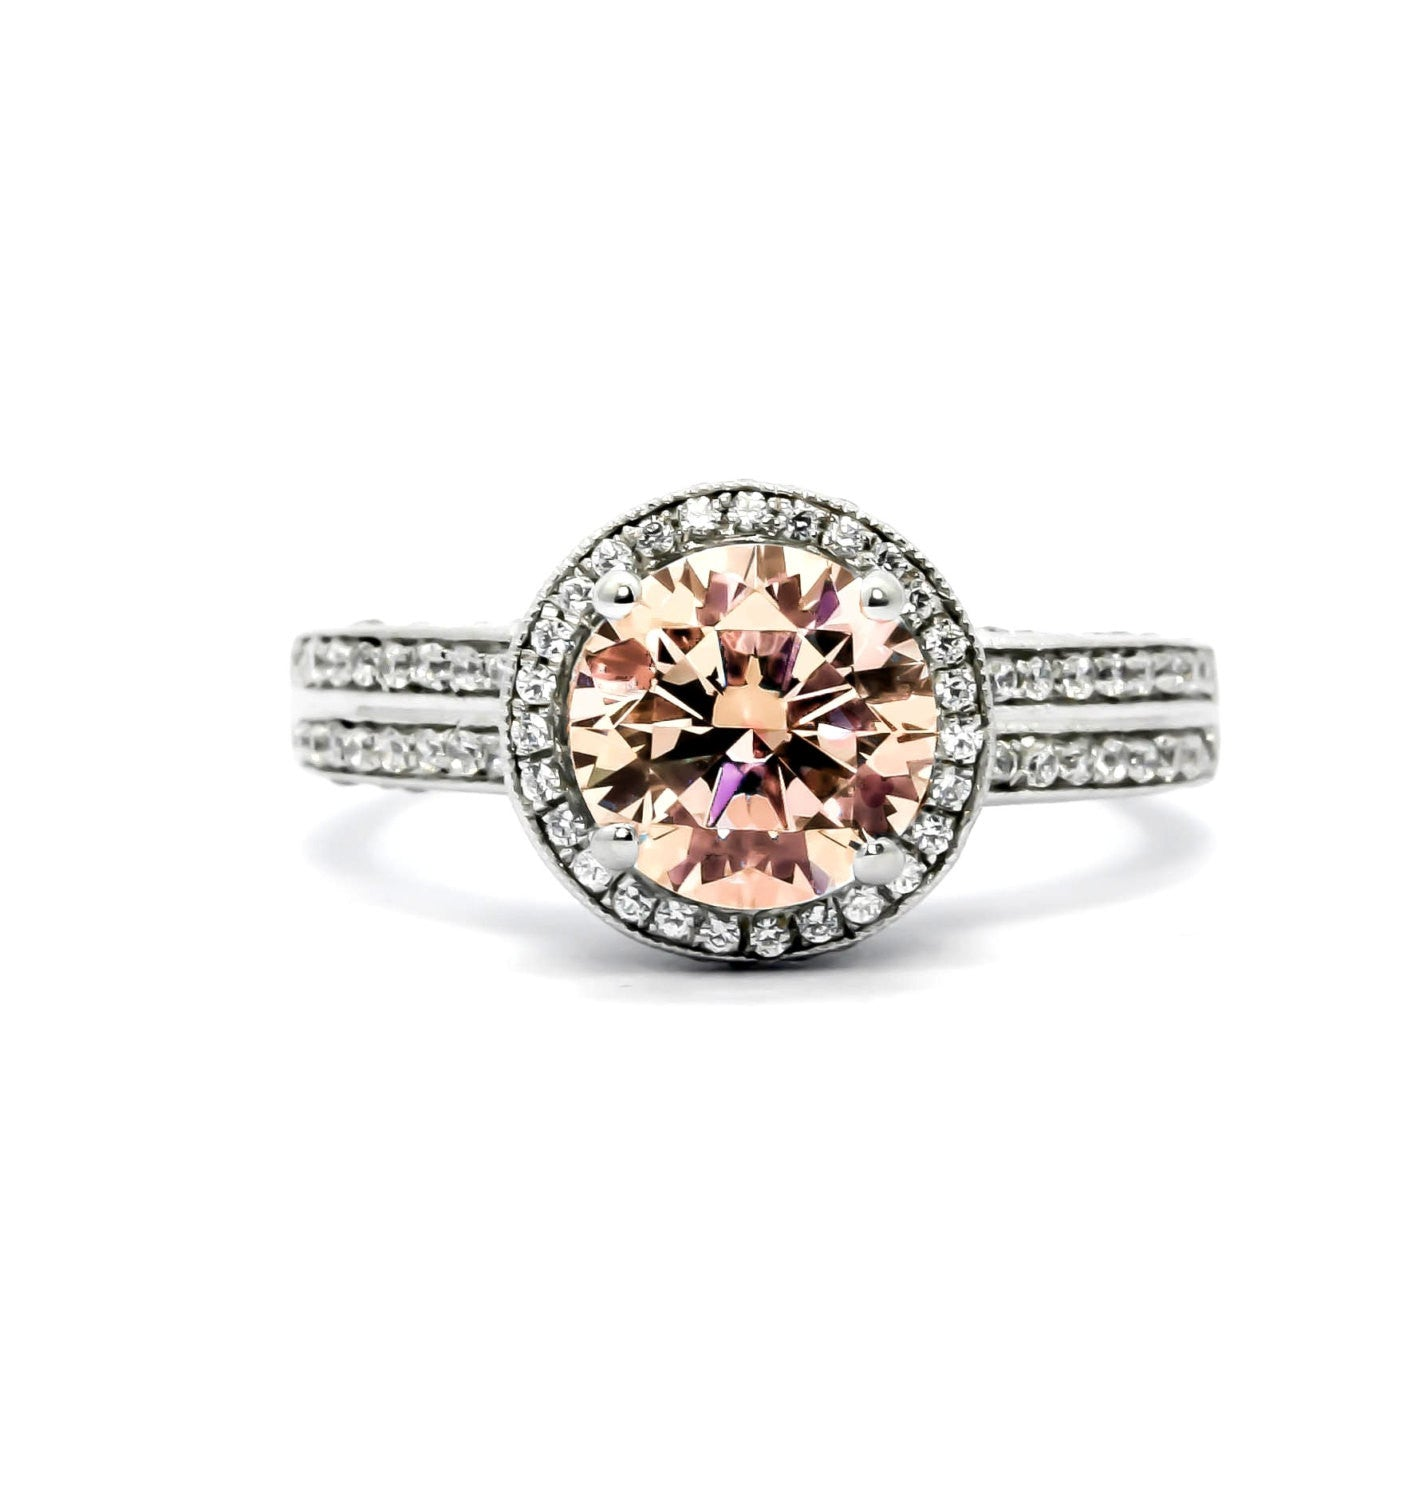 2 Carat Halo Morganite Engagement Ring, Unique Double Shank, 14k Gold With .75 Carat Diamonds, Anniversary Ring - MG73089